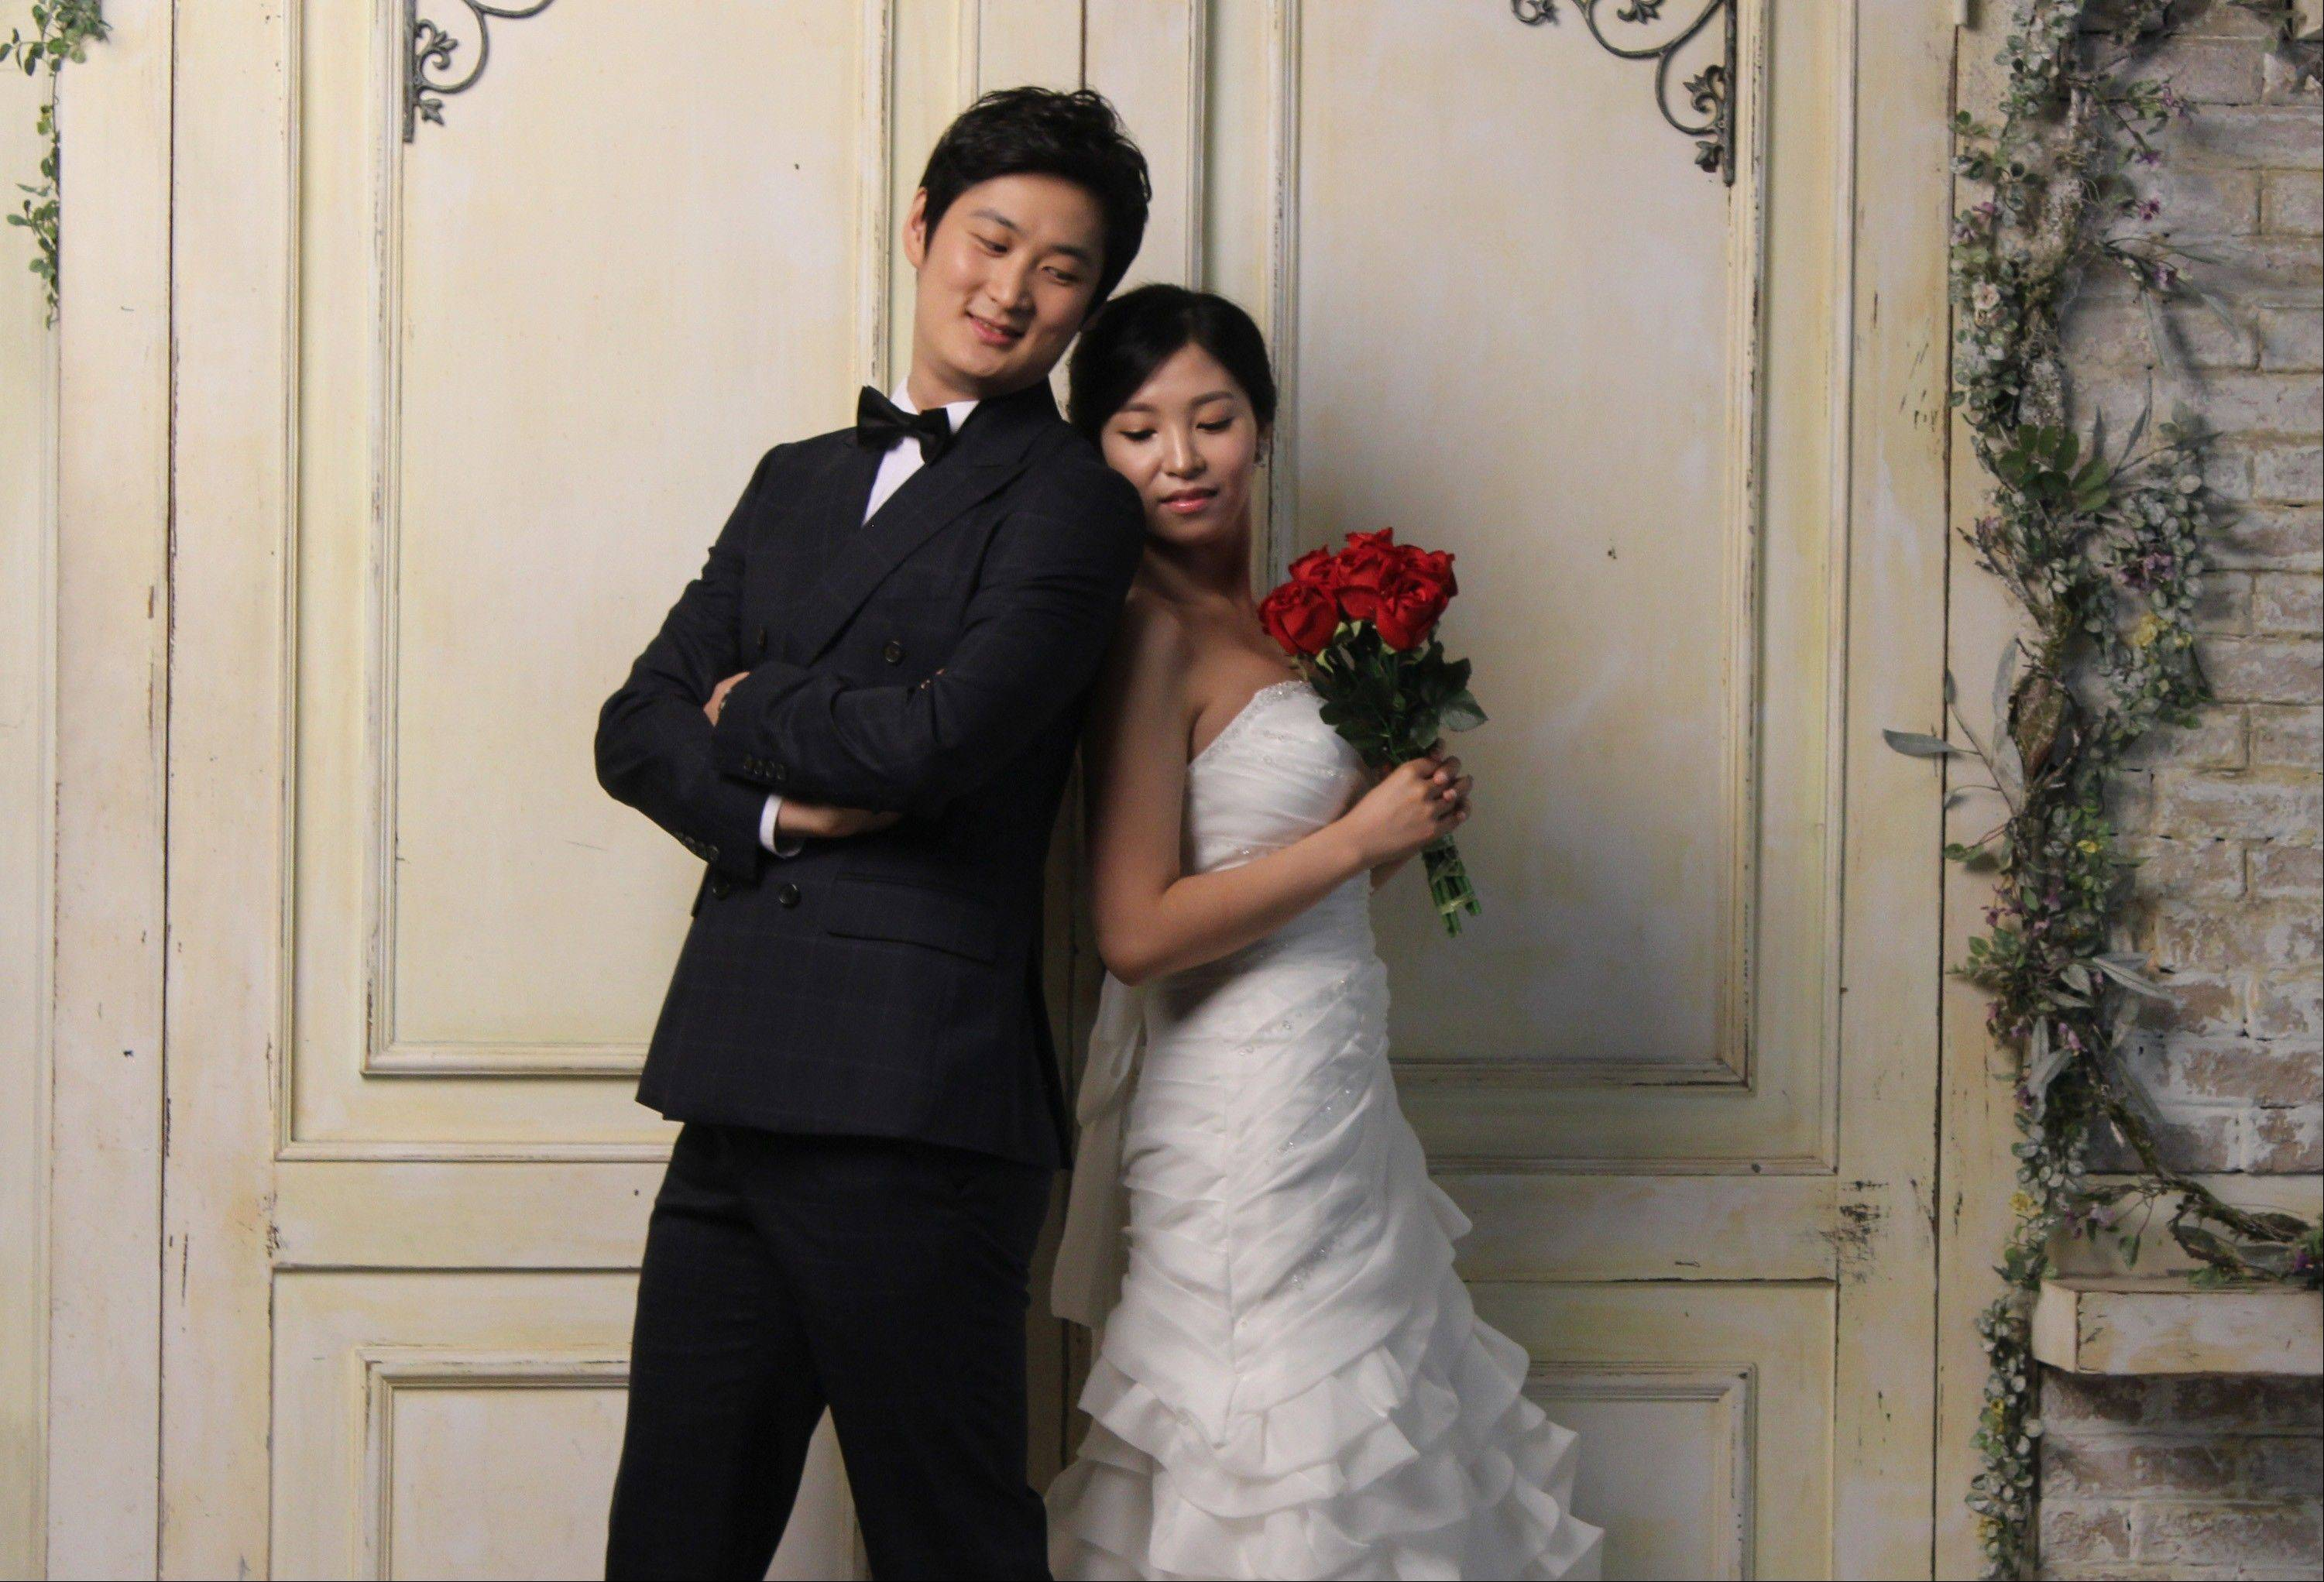 In this Tuesday, July 30, 2013 photo, Chen Jingjing, left, and Yang Candi of Beijing, China, strike a pose at a wedding studio in southern Seoul, South Korea, during an eight-hour photo session part of a South Korean wedding tourism package for Chinese couples. China is the source of one quarter of all tourists to South Korea, and a handful of companies in South Koreans $15 billion wedding industry are wooing an image-conscious slice of the Chinese jet set happy to drop several thousand dollars on a wedding album with a South Korean touch.